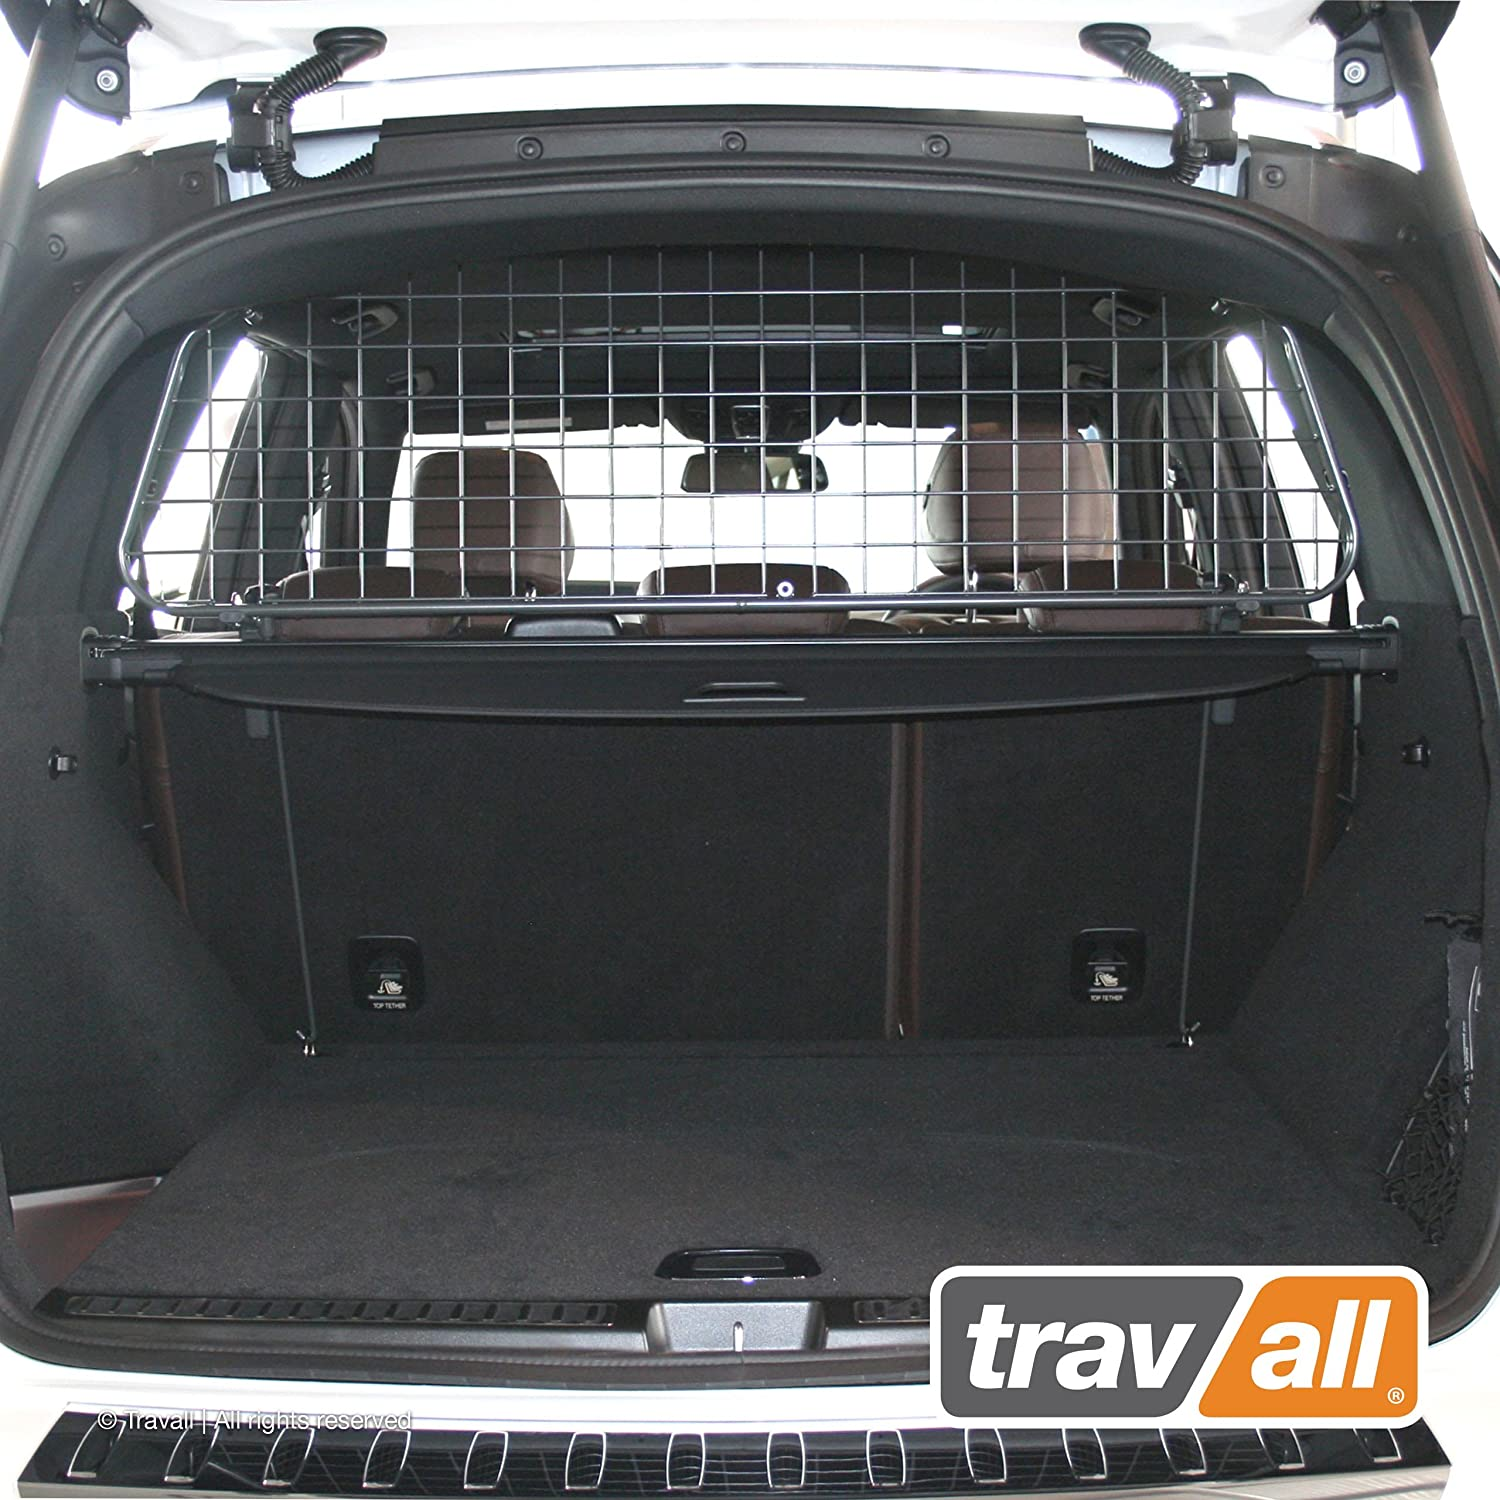 Travall Guard Compatible with Mercedes-Benz GLE-Class and 63 AMG 2015-2019 M-Class 2011-2015 TDG1369 – Rattle-Free Steel Pet Barrier